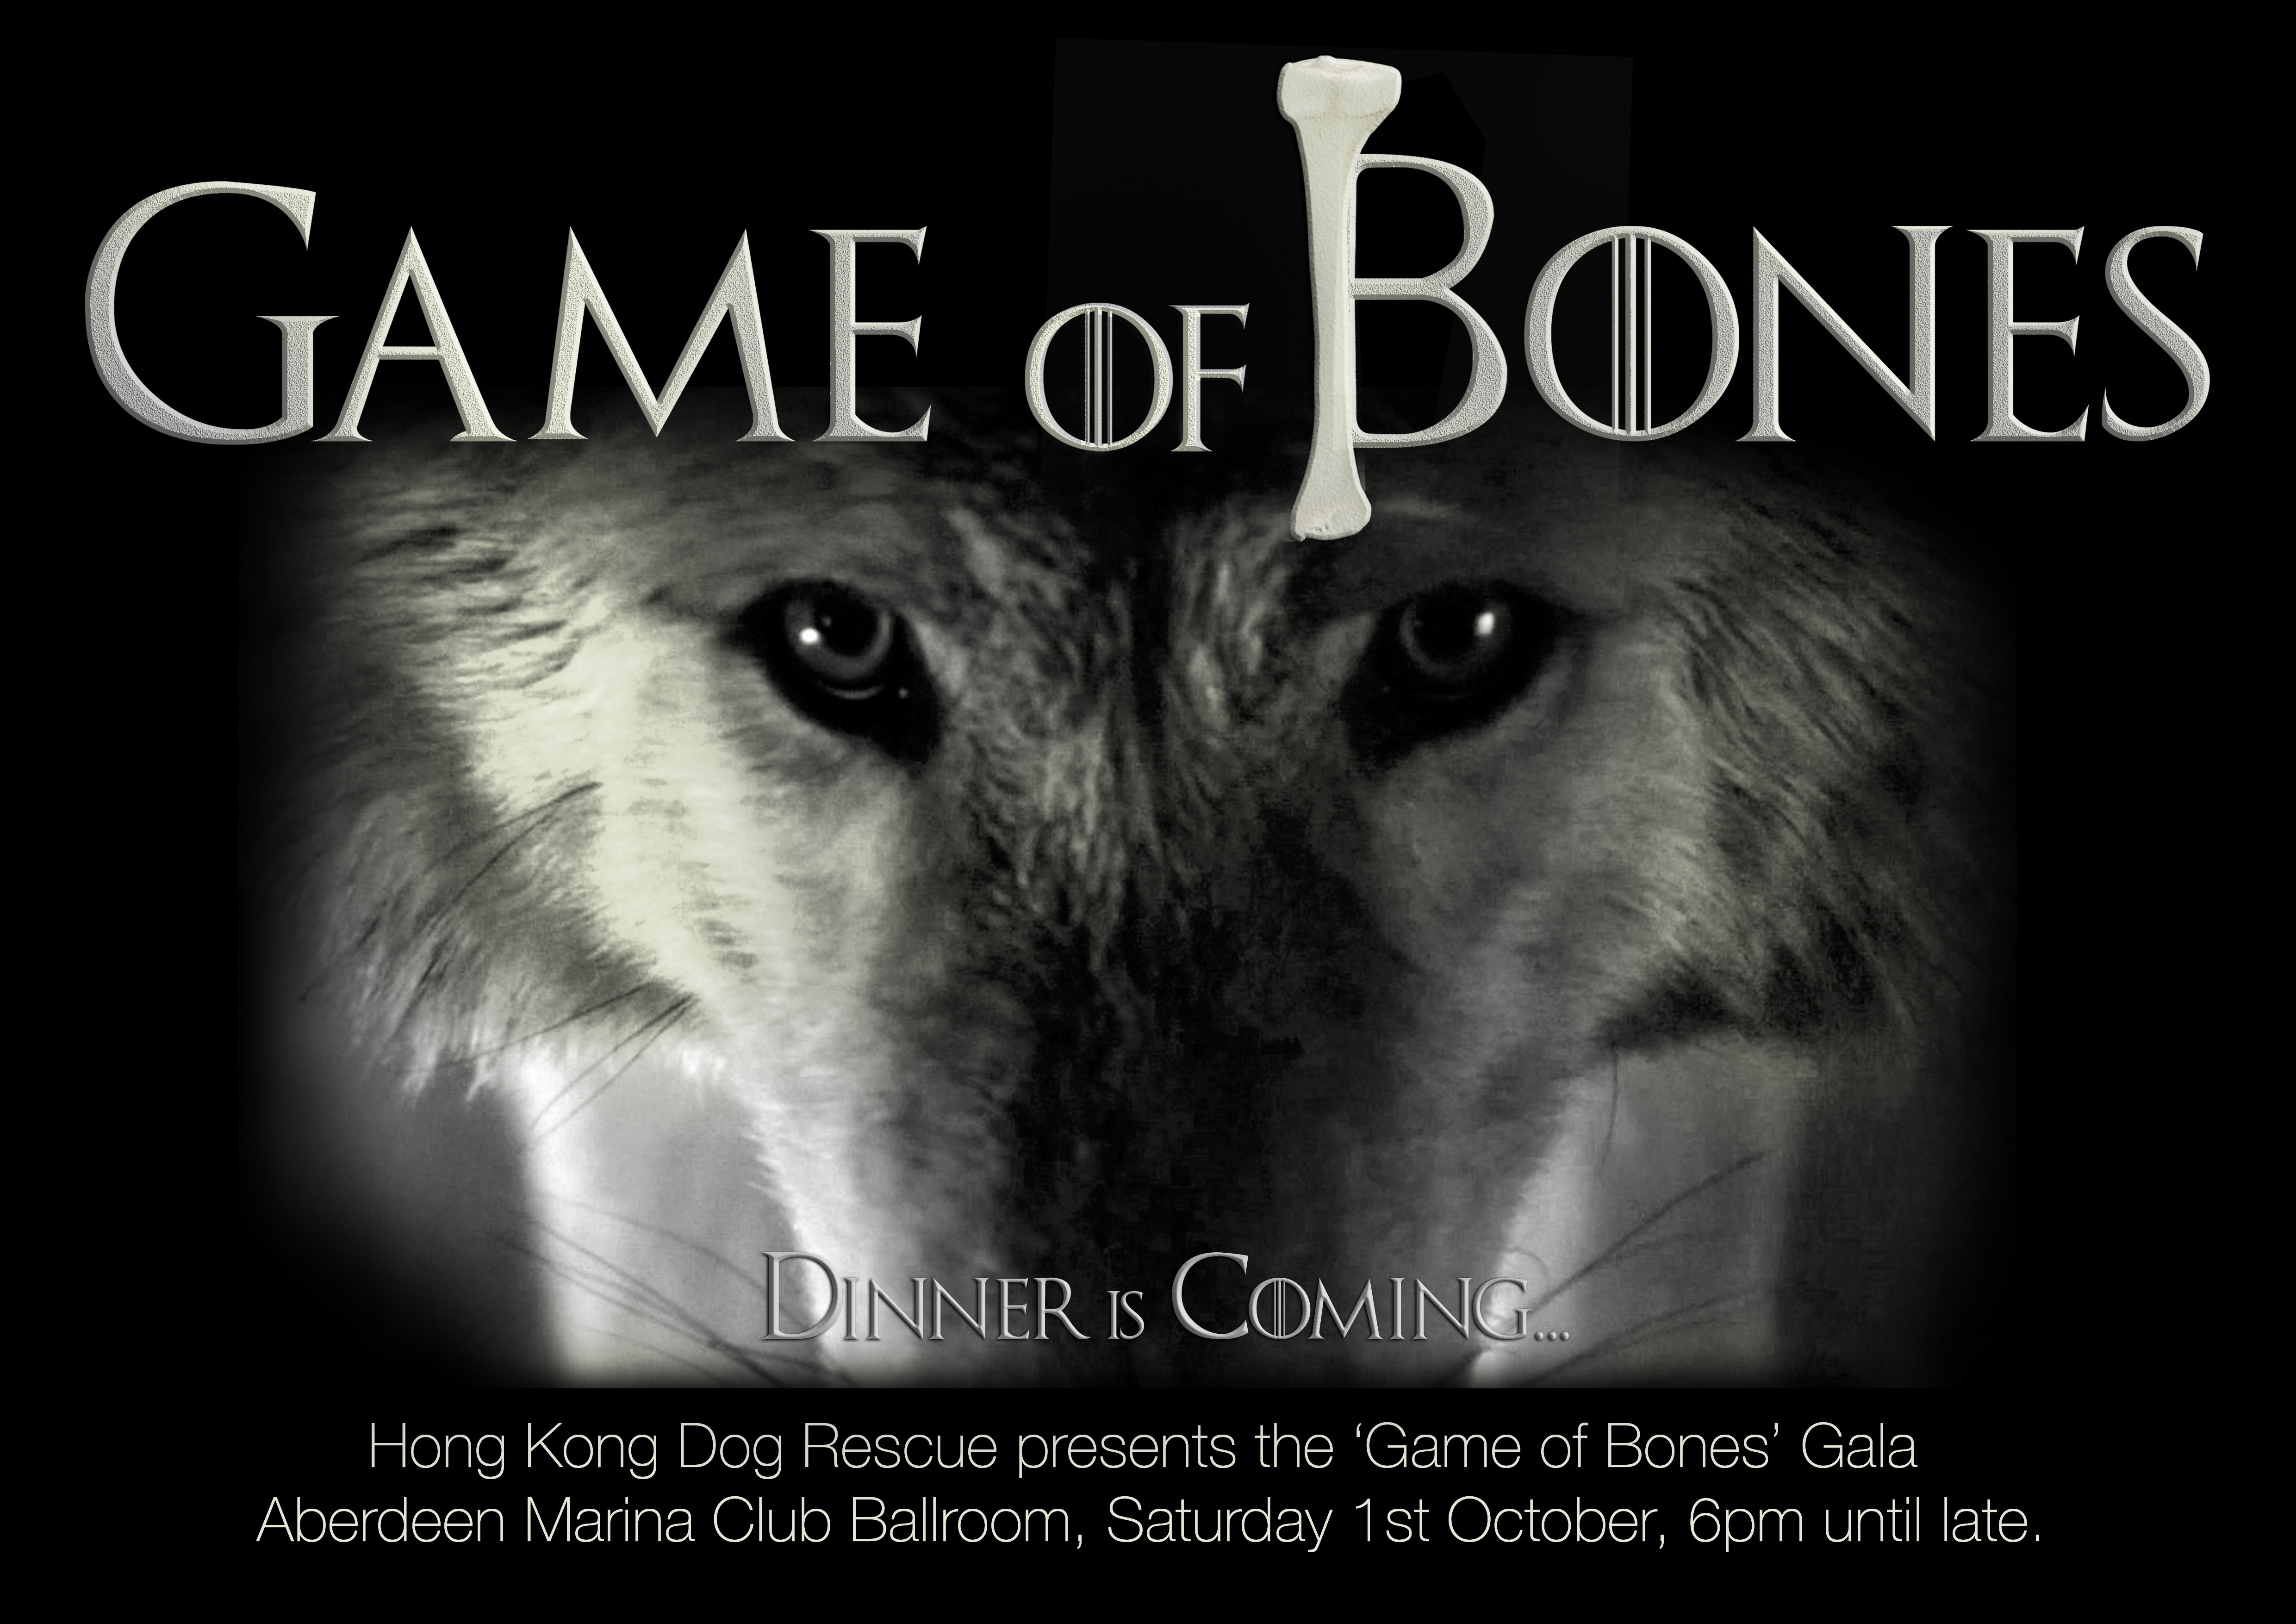 HKDR Official Invitation to Game of Bones - Dinner is coming